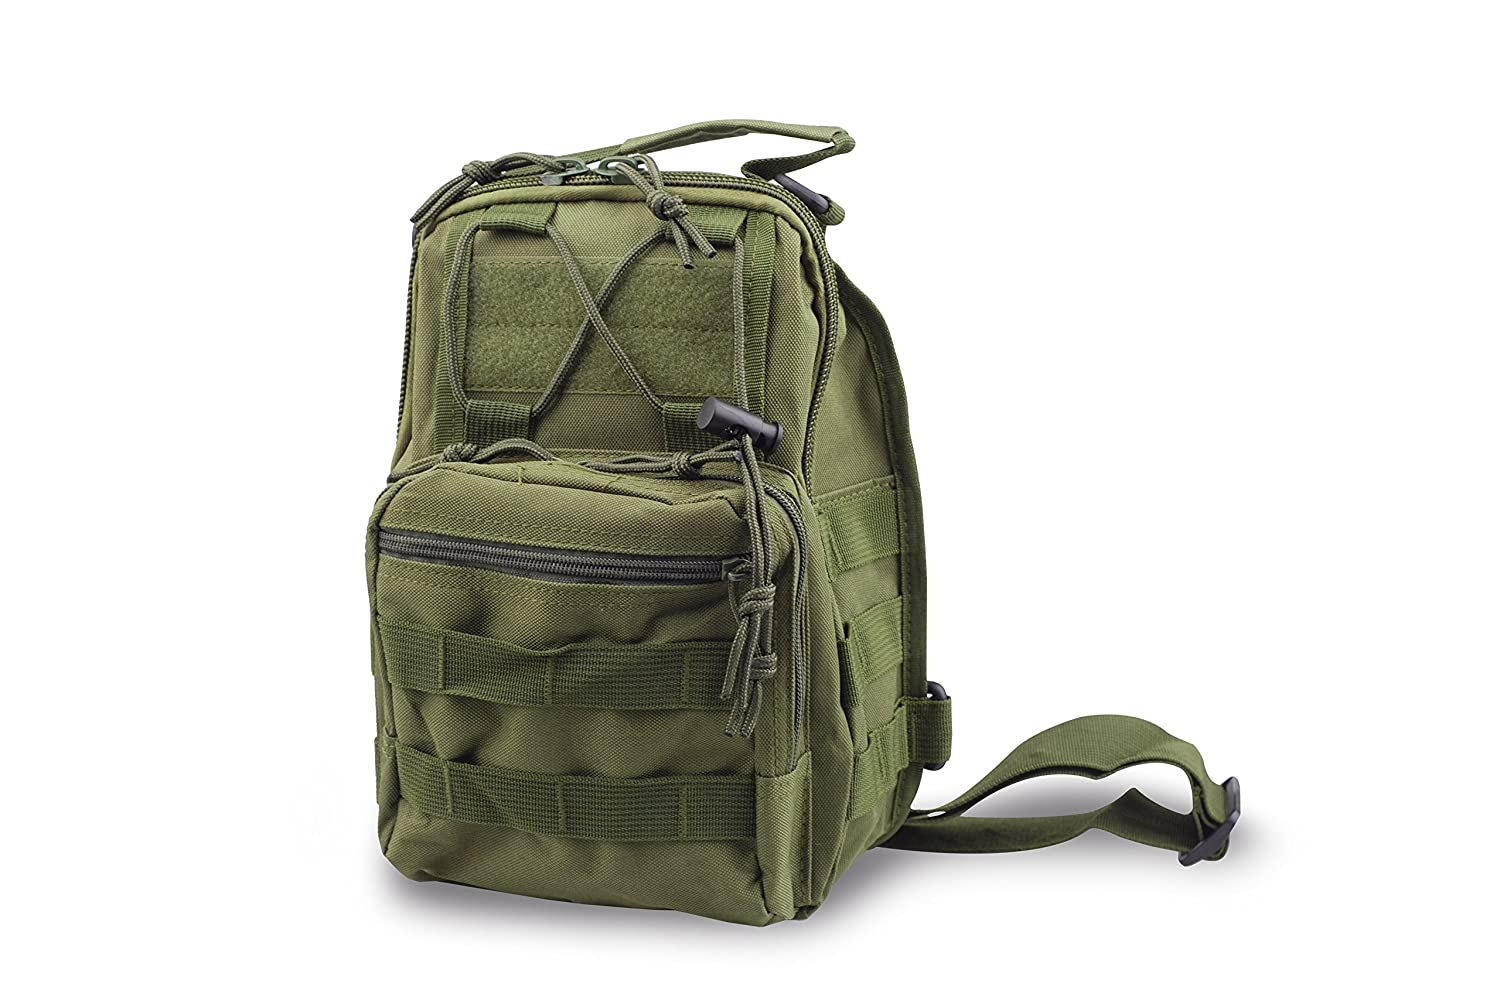 5053de4c8e Amazon.com : CISNO Outdoor Rucksack Tactical Molle Messenger Assault Sling  Shoulder Bag Backpack Pack (Army Green) : Sports & Outdoors